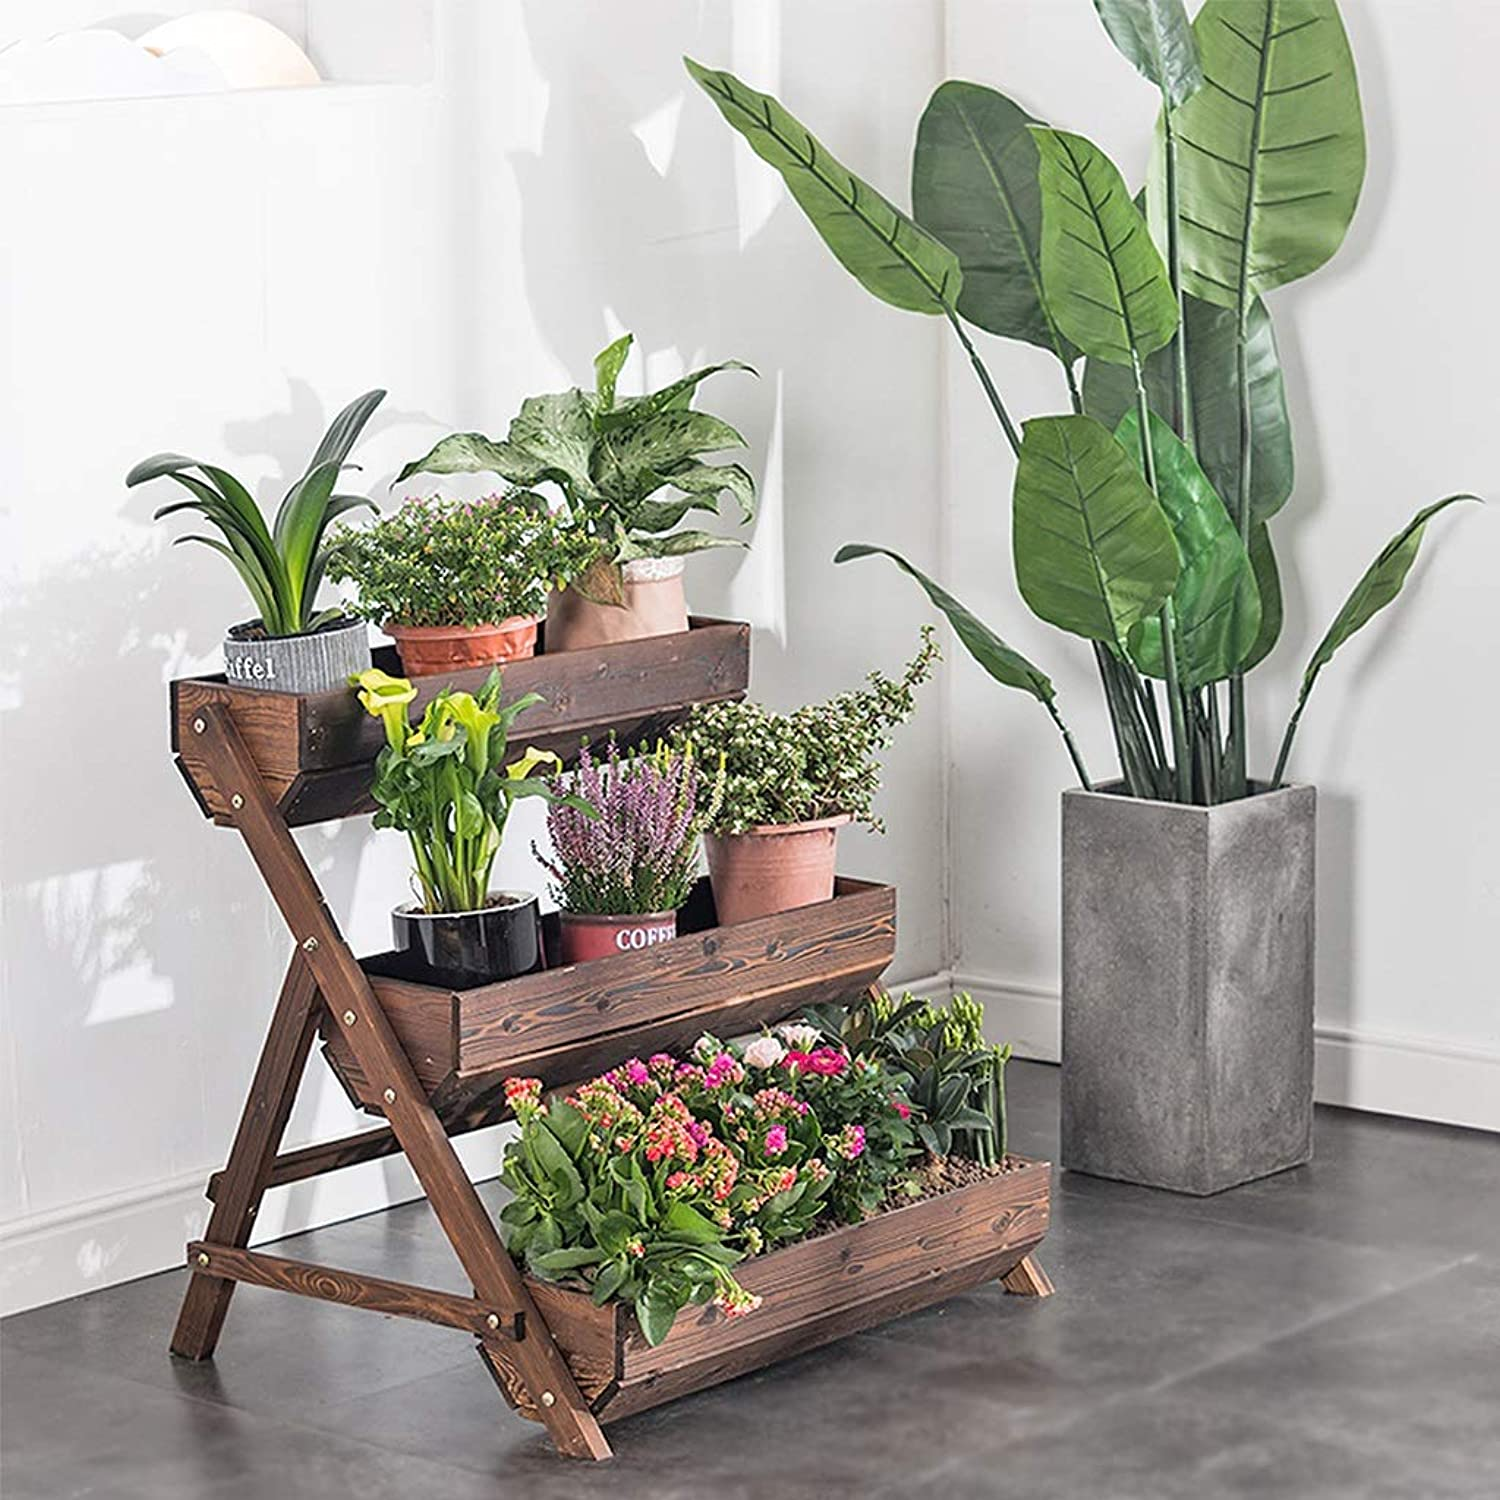 3 Tier Flower Stand Brown, Solid Wood Indoor Plant Stands, Balcony Outdoor Patio Multi-Layer Wood Flower Stand